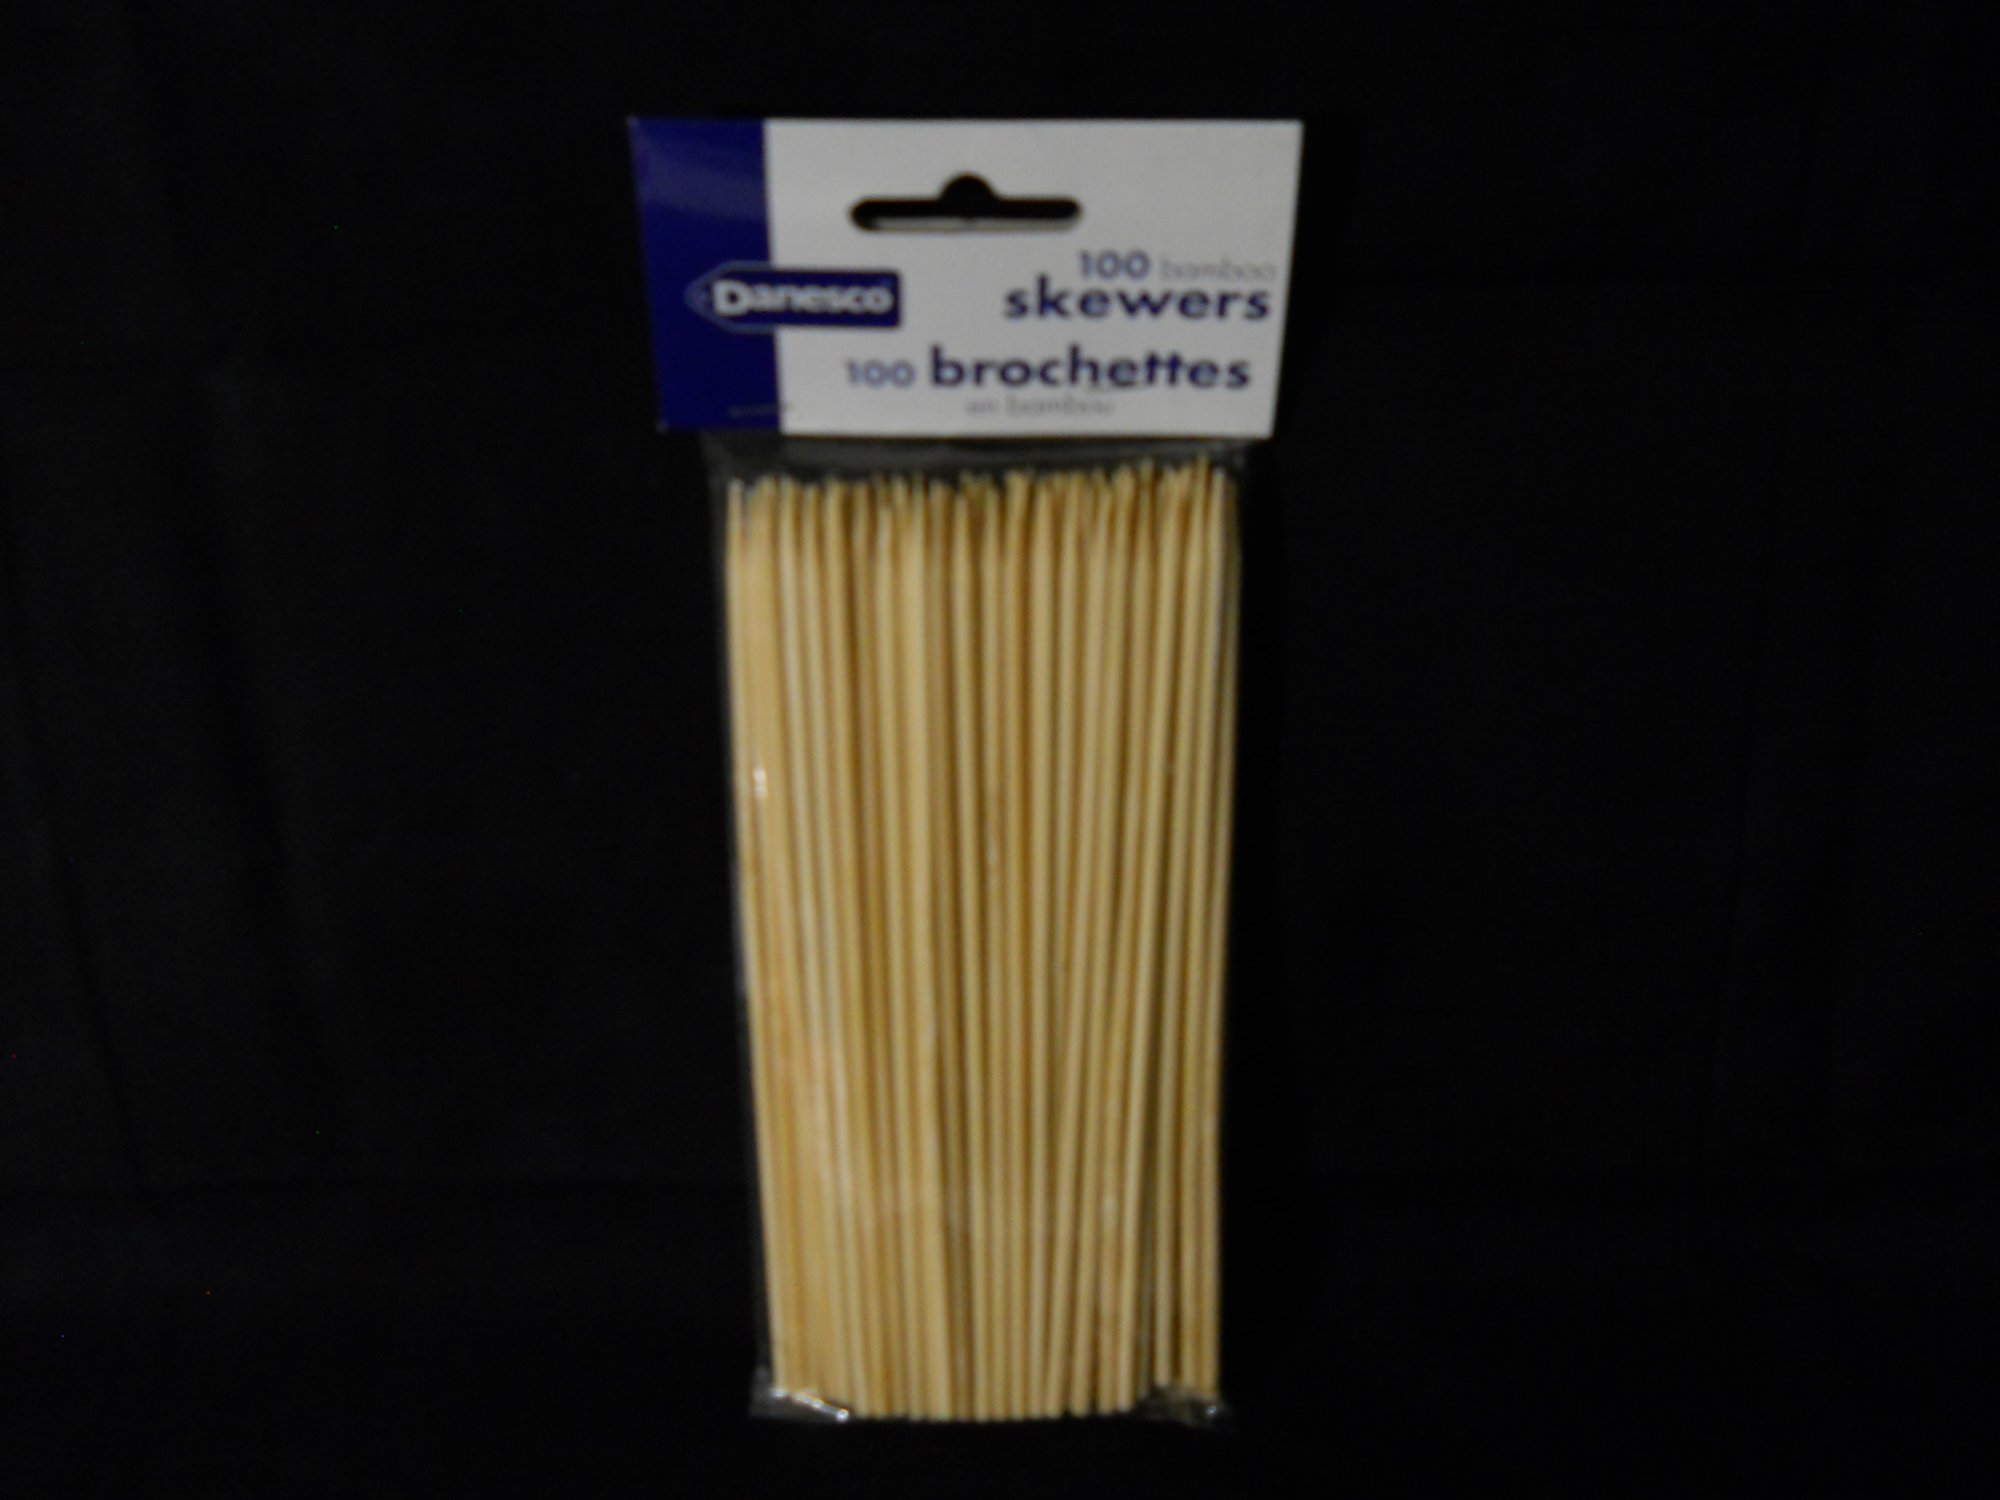 Danesco bamboo skewers 6